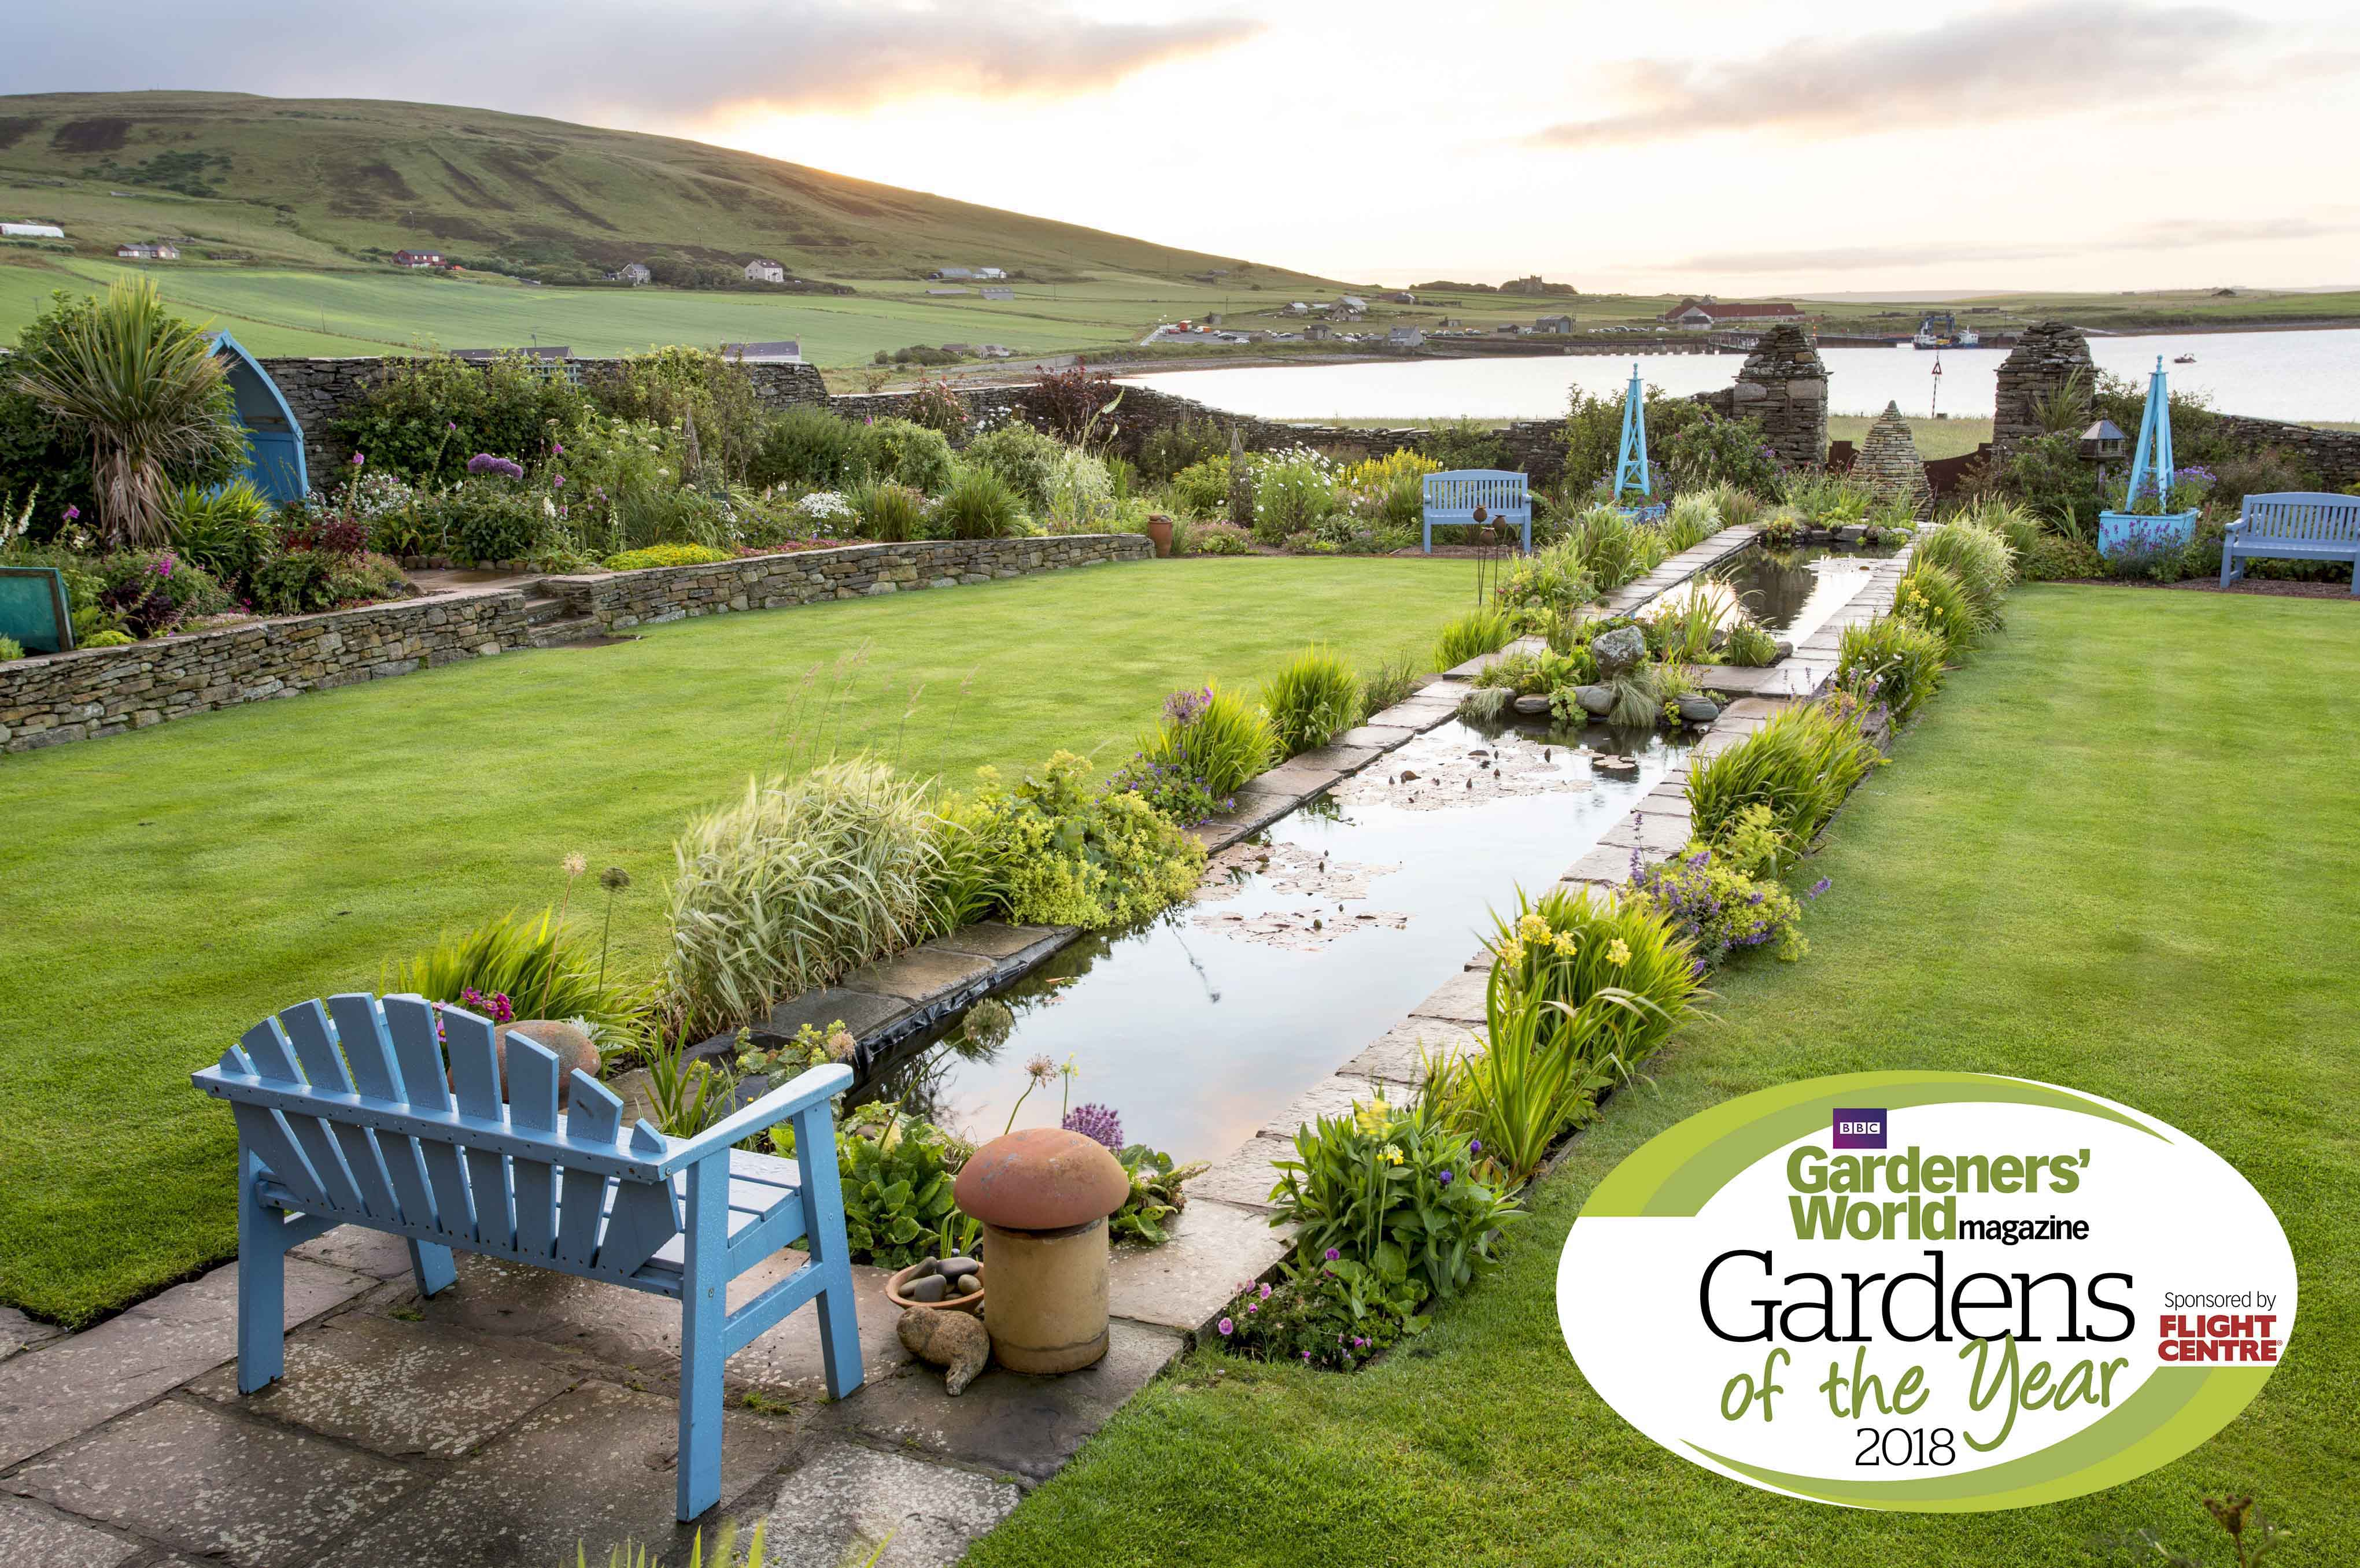 Caroline Critchlow Winner Challenging Plot CategoryGardeners' World Garden of the Year Competition 2017 Photographer Paul Debois